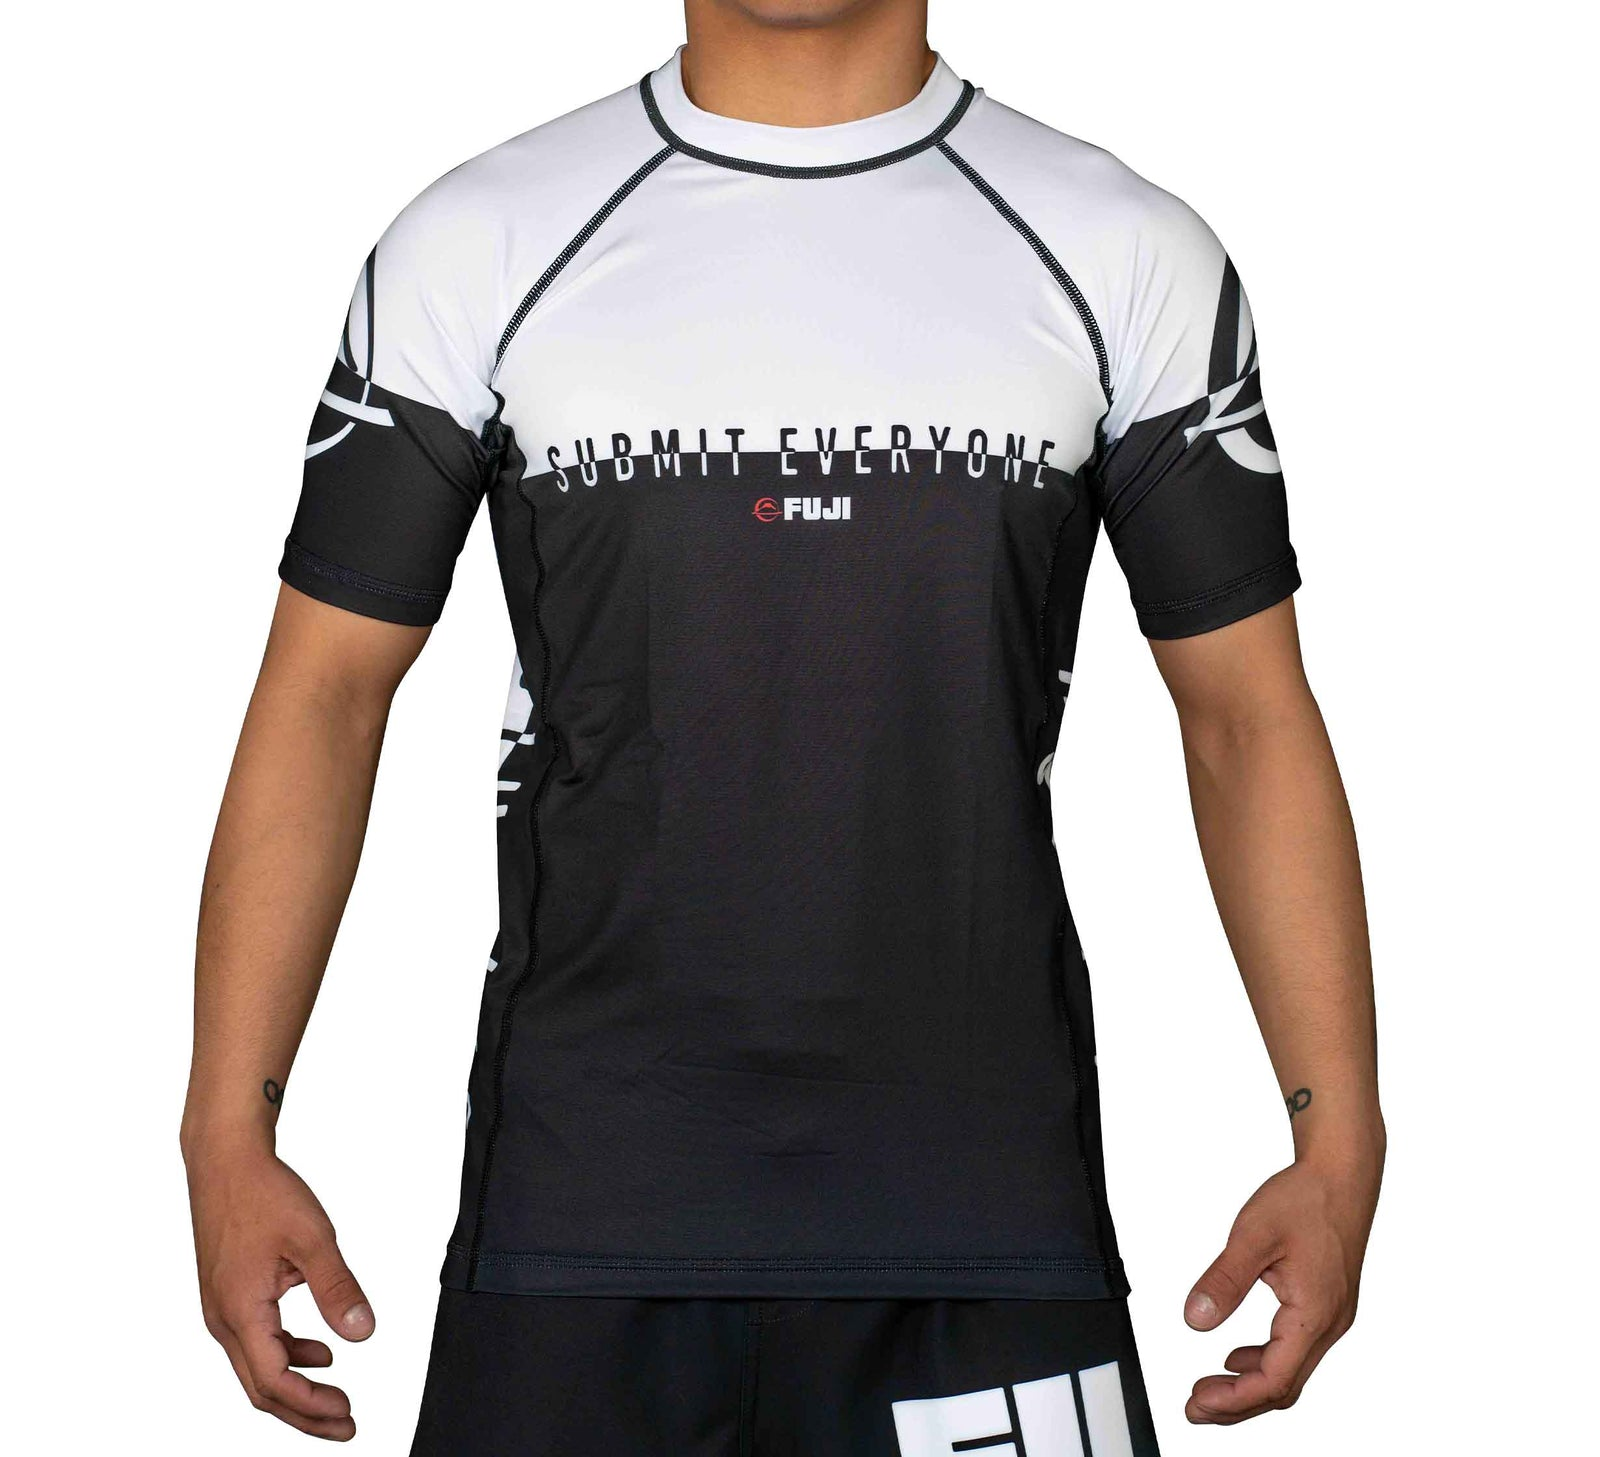 Submit Everyone Short Sleeve Rashguard